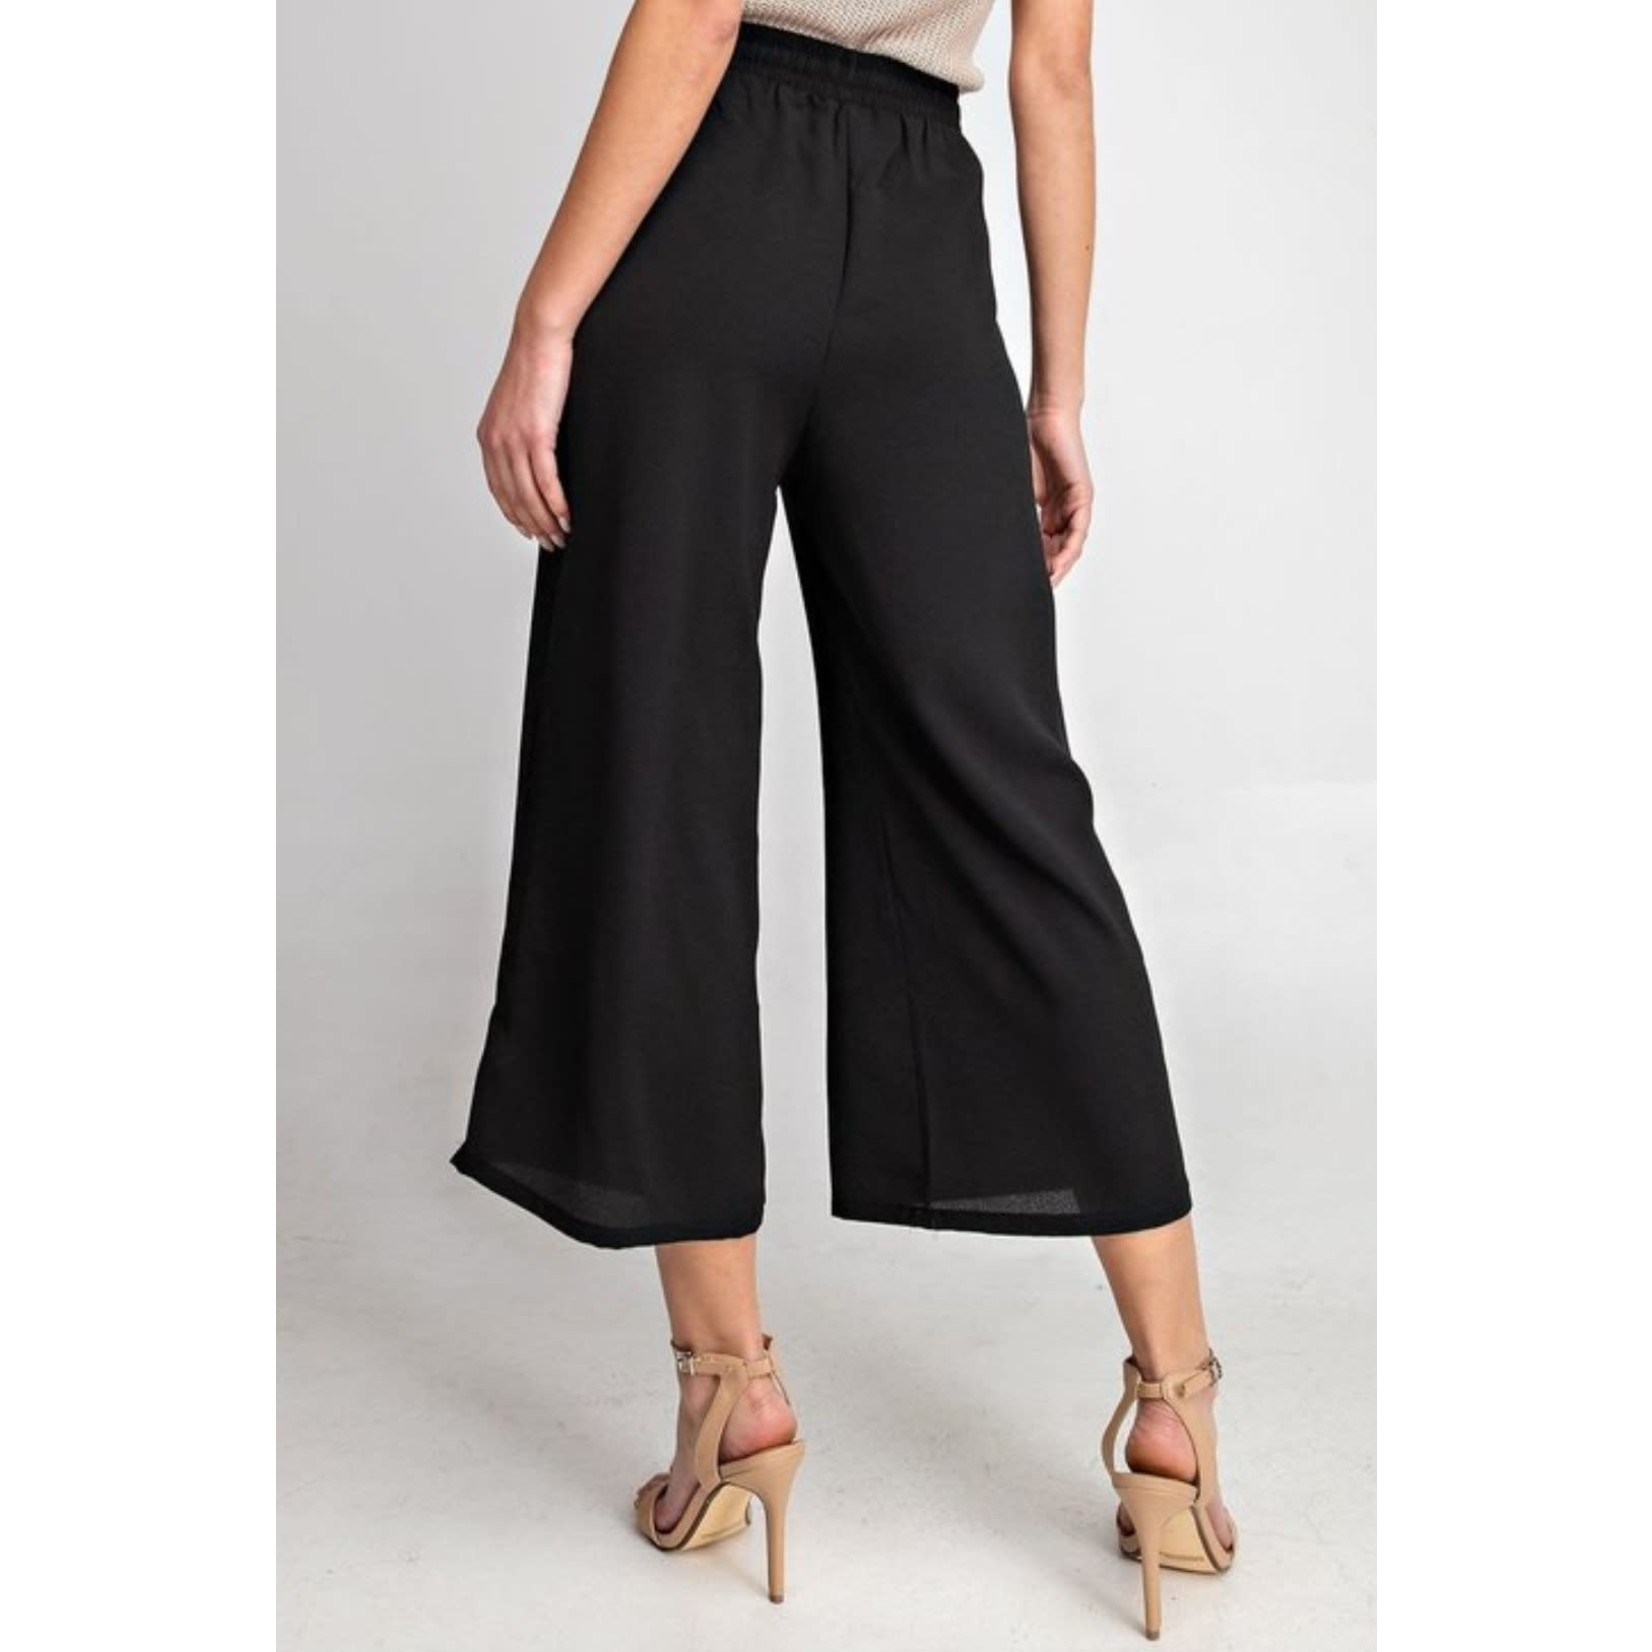 EE:Some Black High Waisted Woven Wide Leg Pants